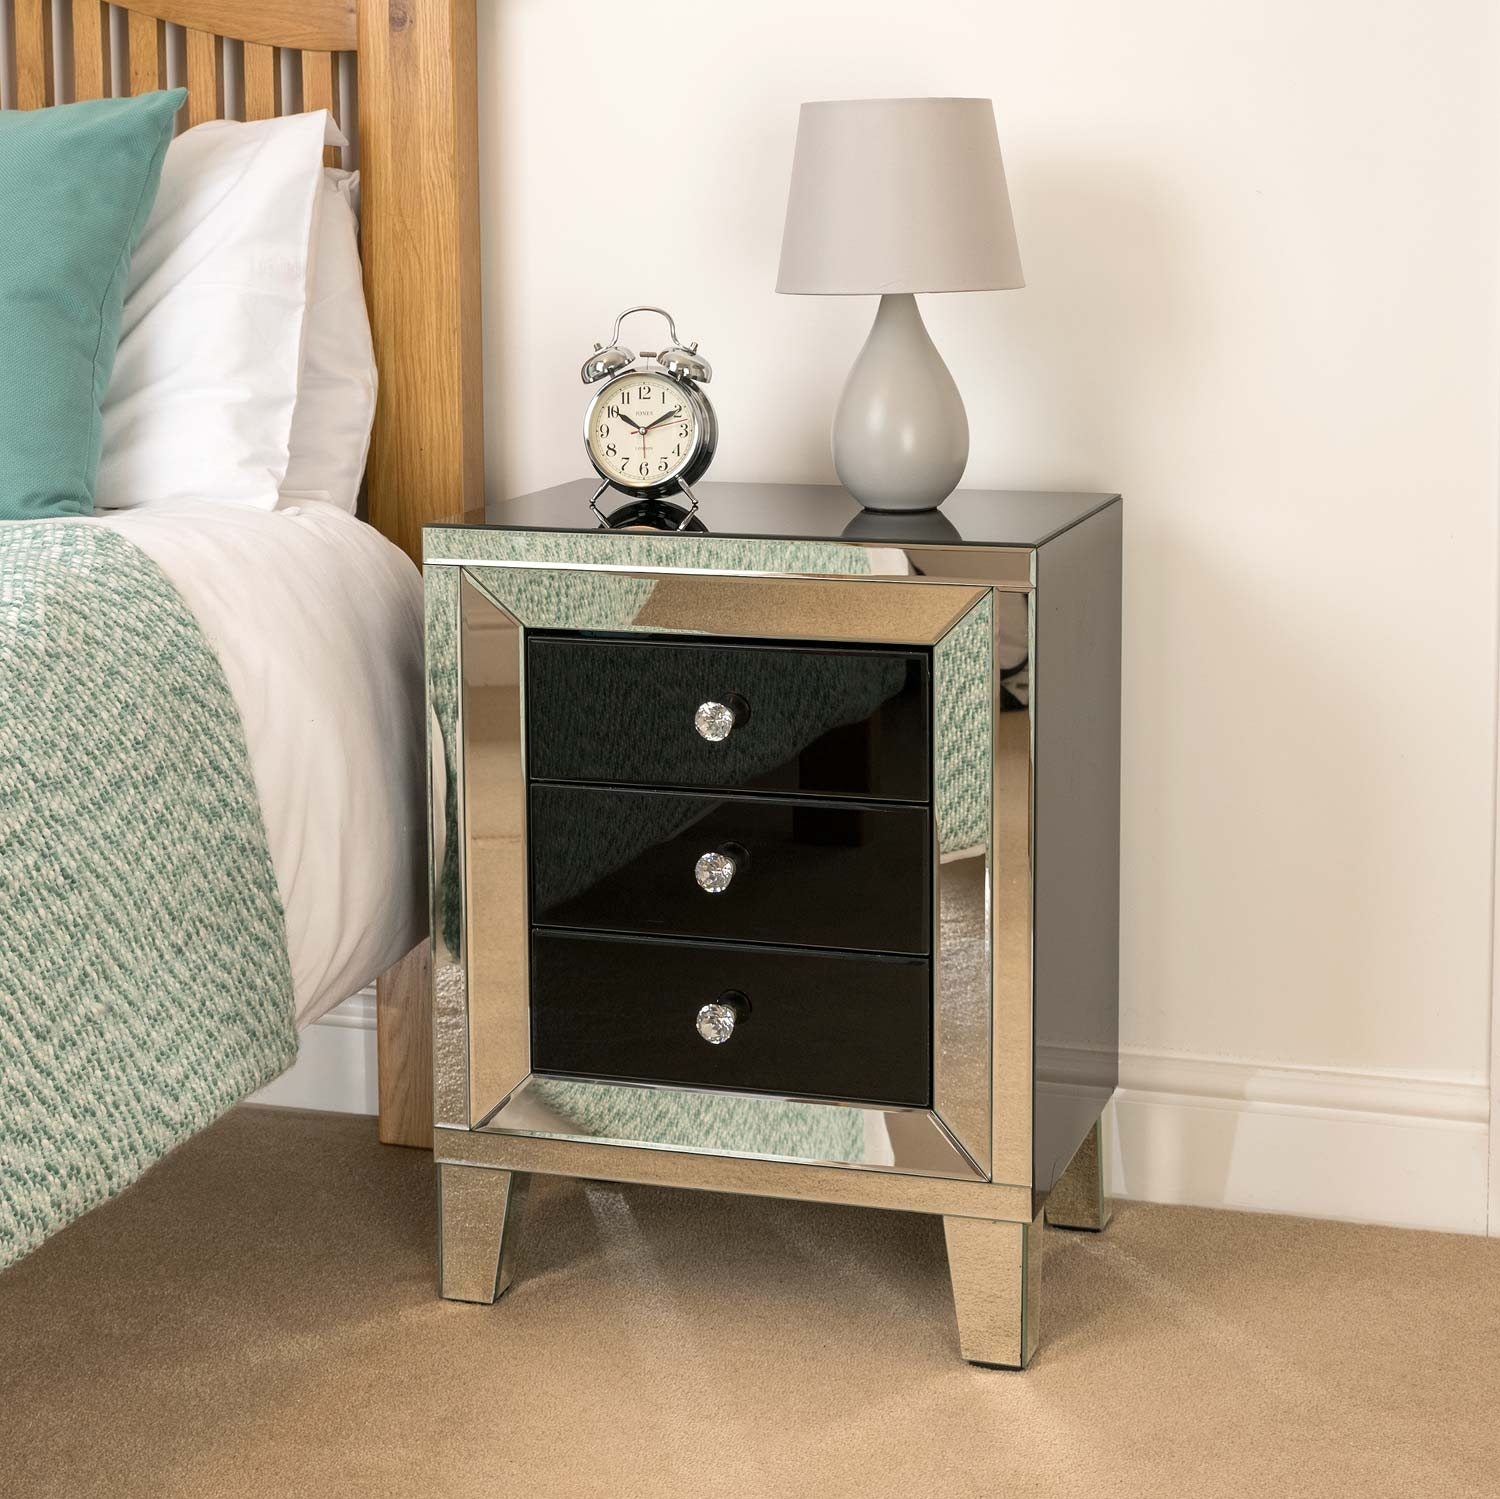 Image of Christow Black 3 Drawer Mirrored Bedside Cabinet